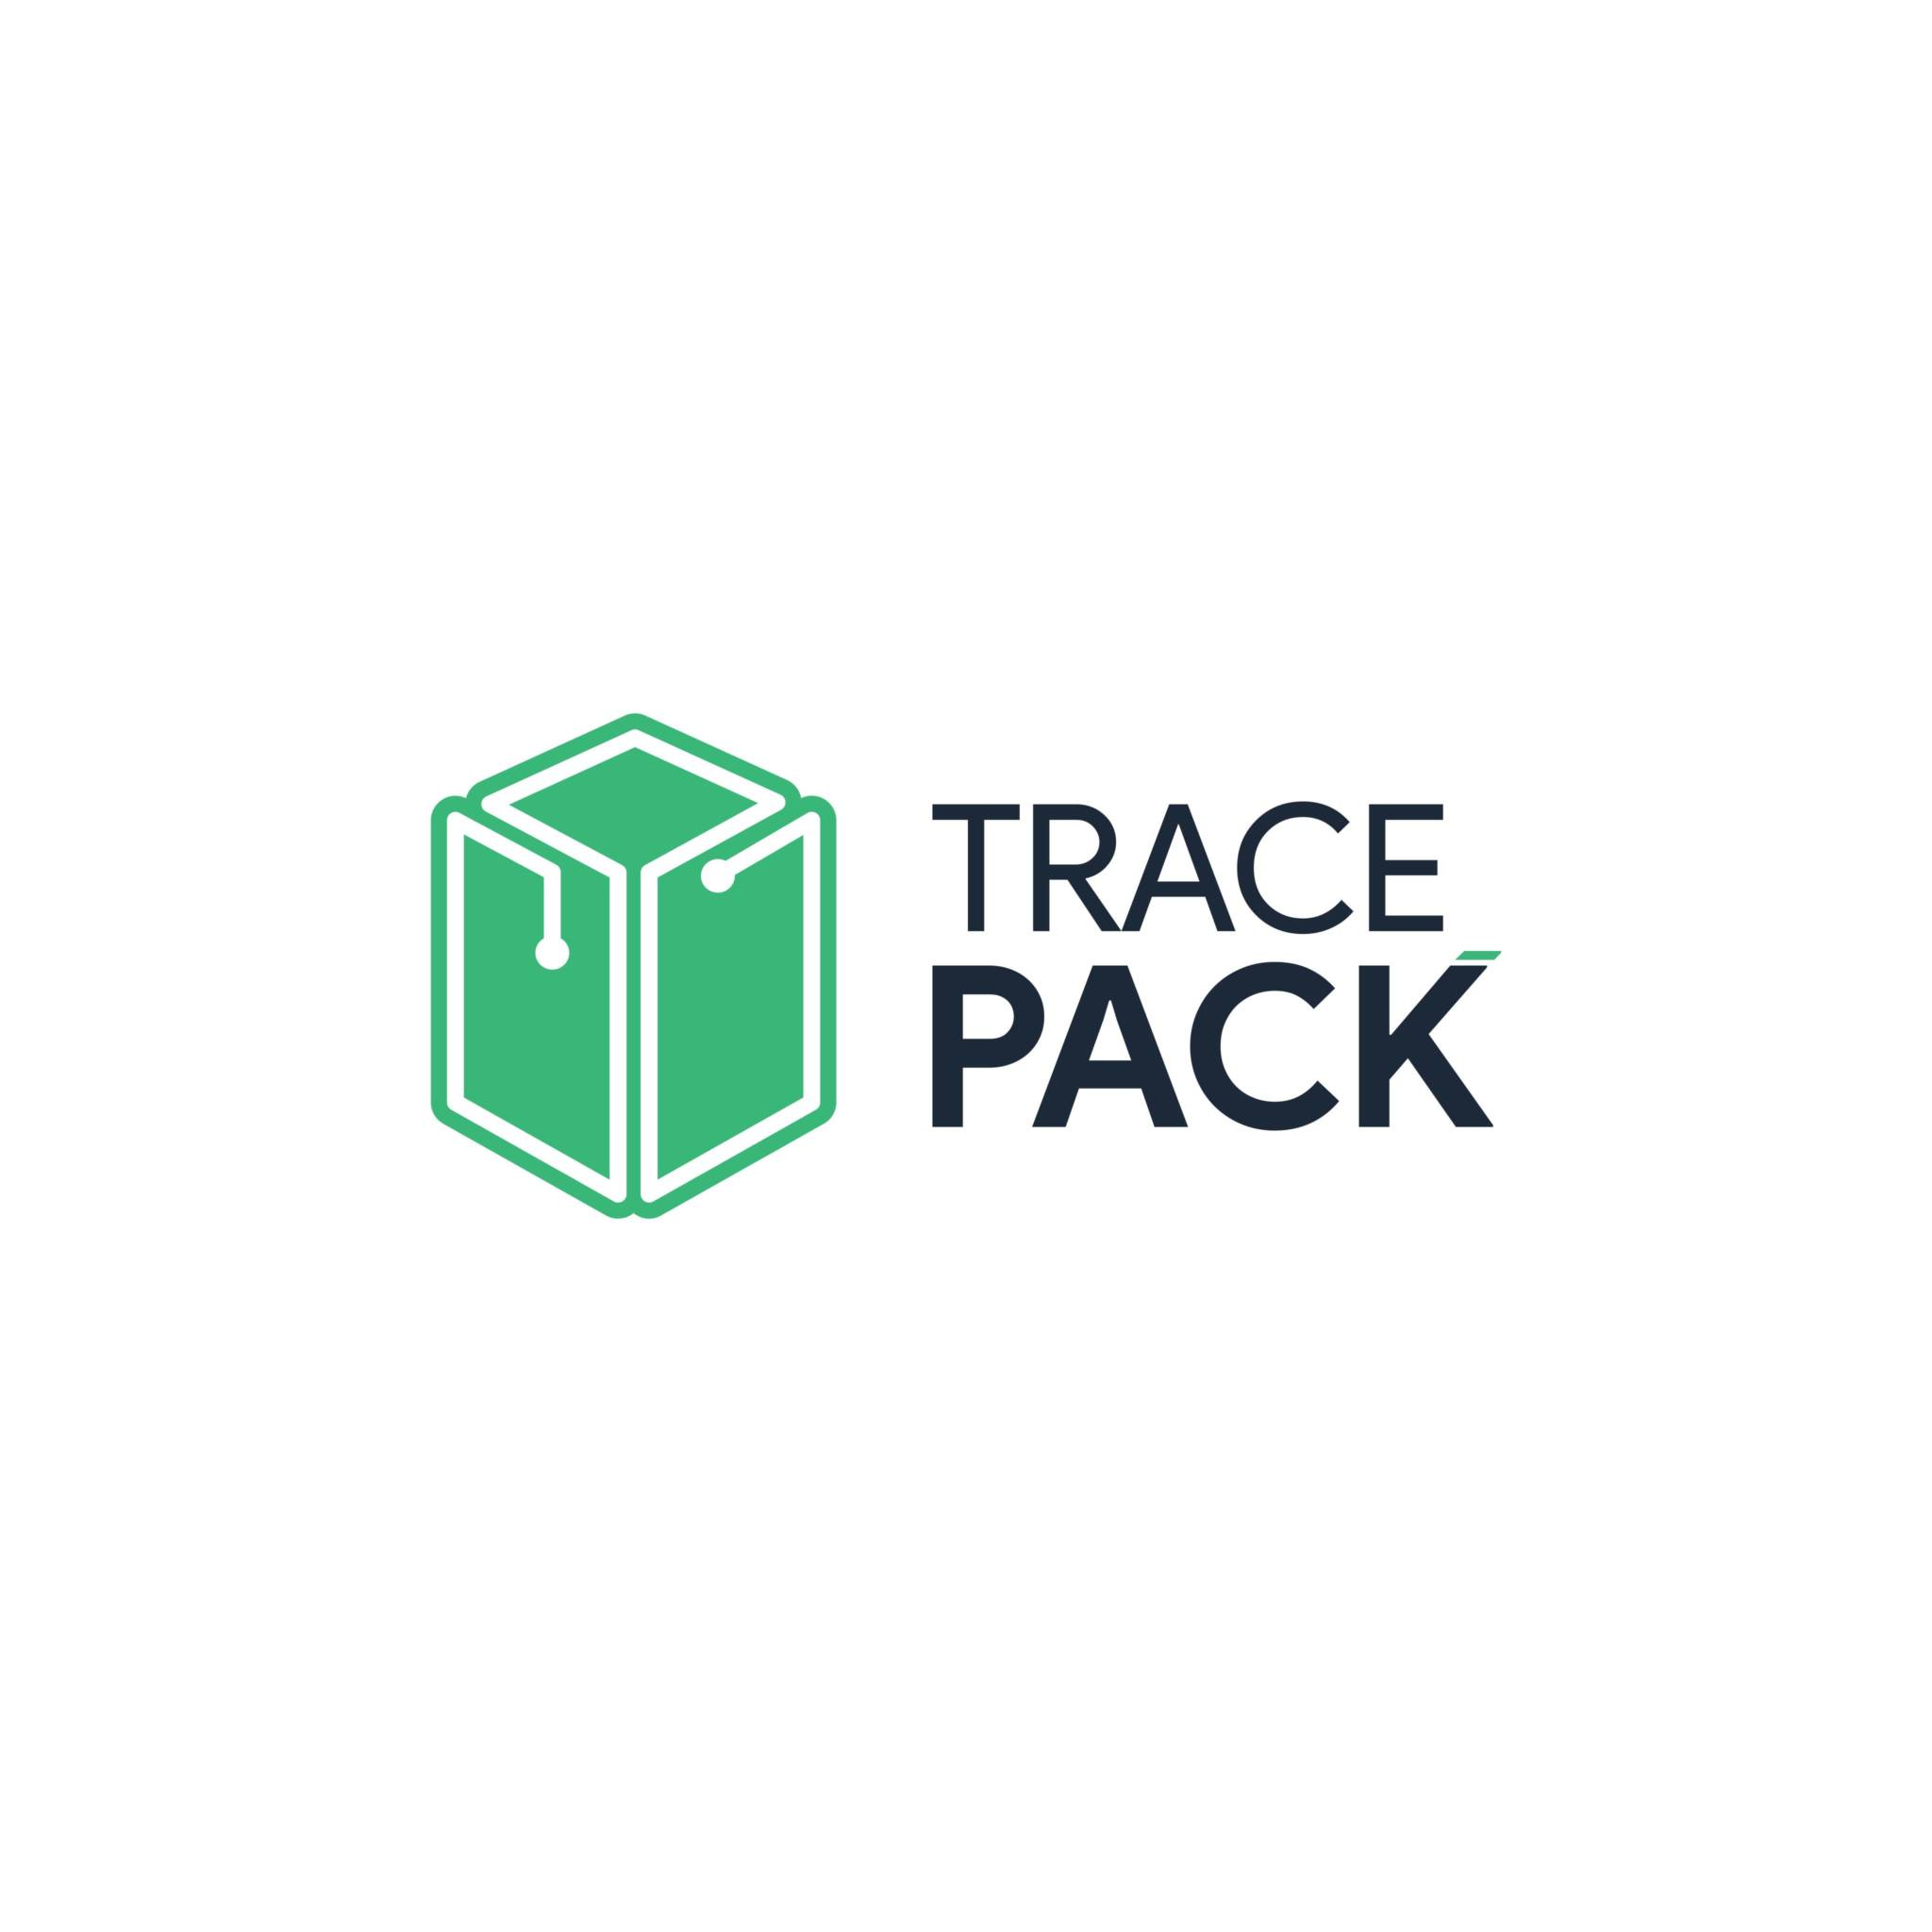 TRACE PACK